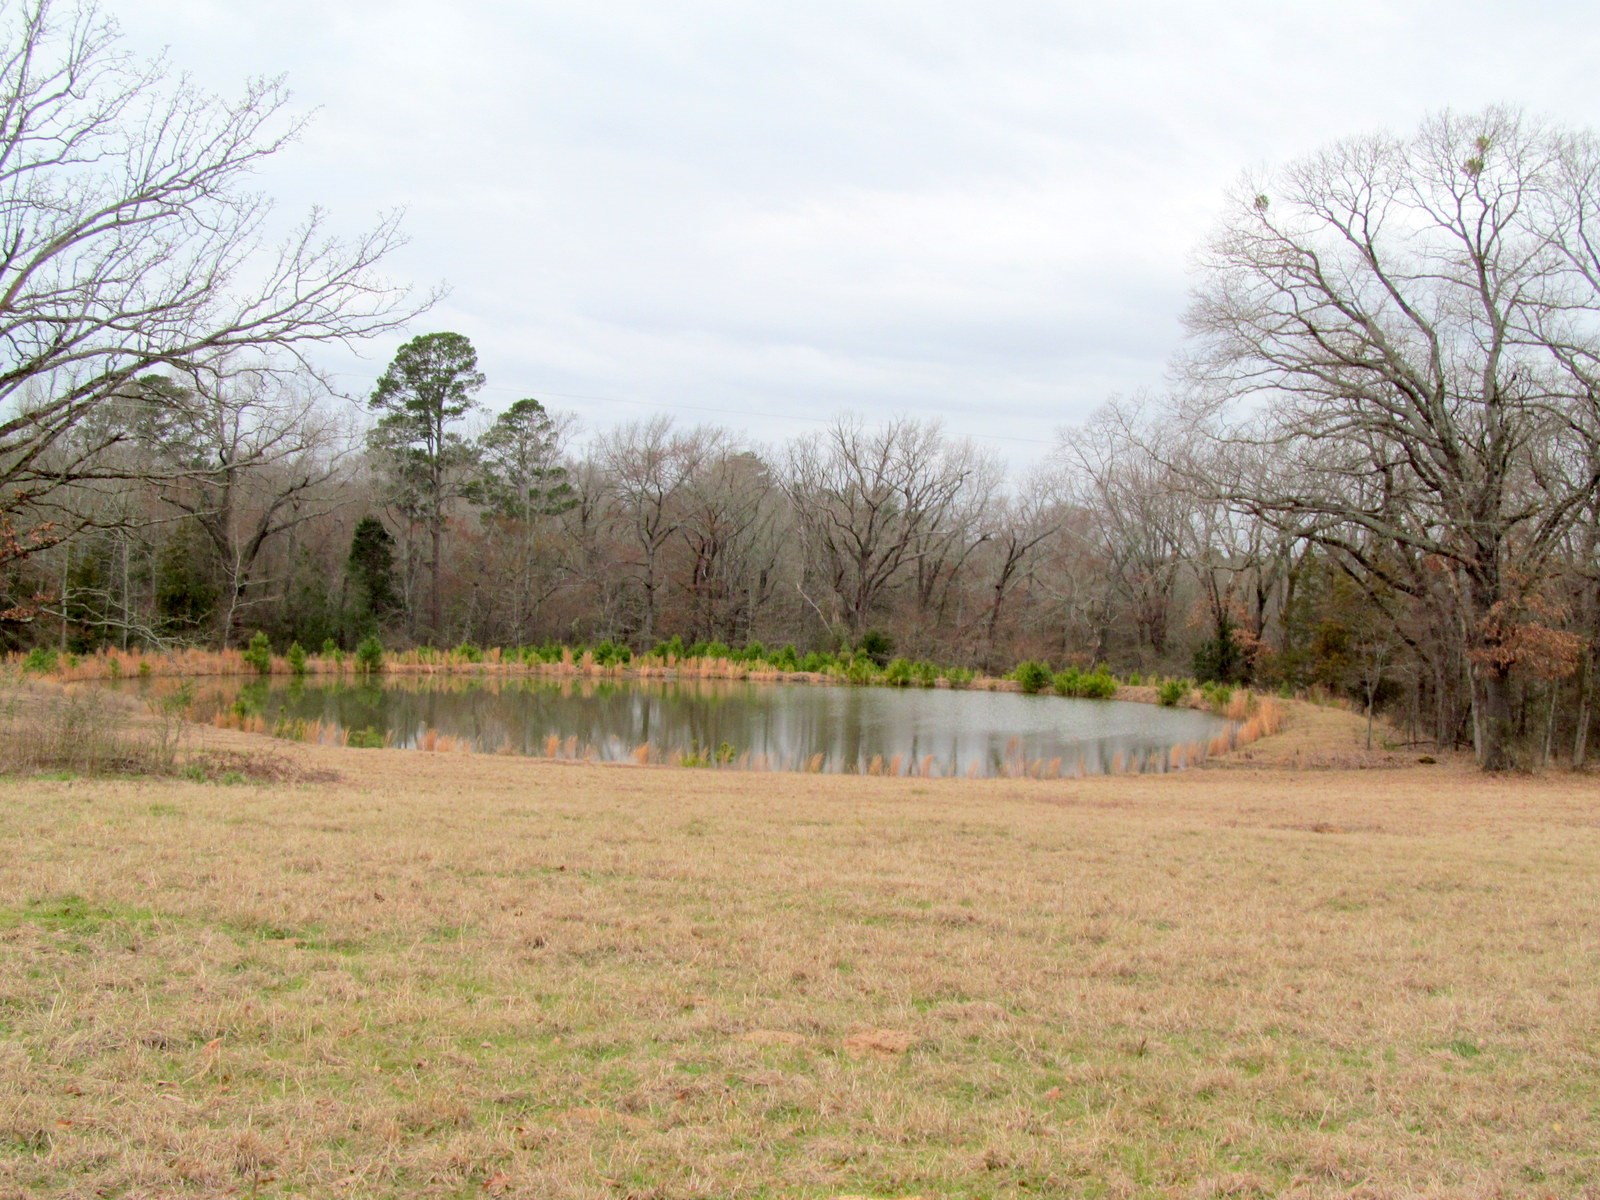 ALMOST 16 EAST TEXAS ACRES FOR SALE IN WINNSBORO, TEXAS